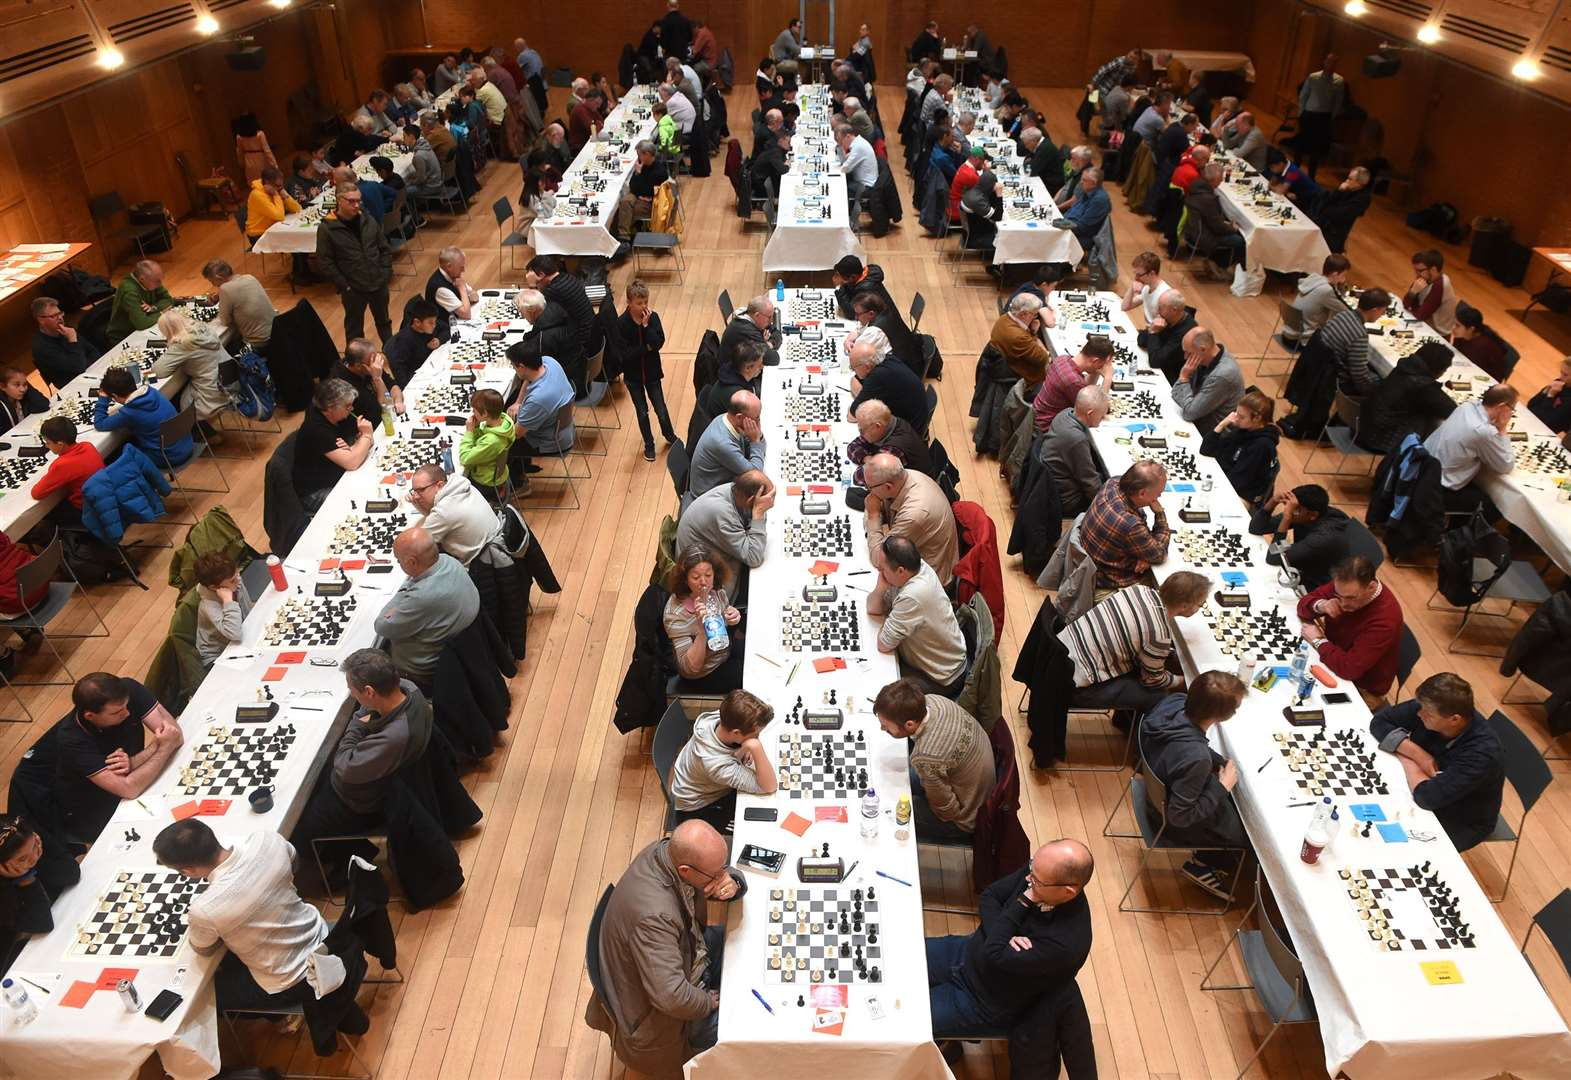 The 37th Chess Congress welcomes record numbers to The Apex event